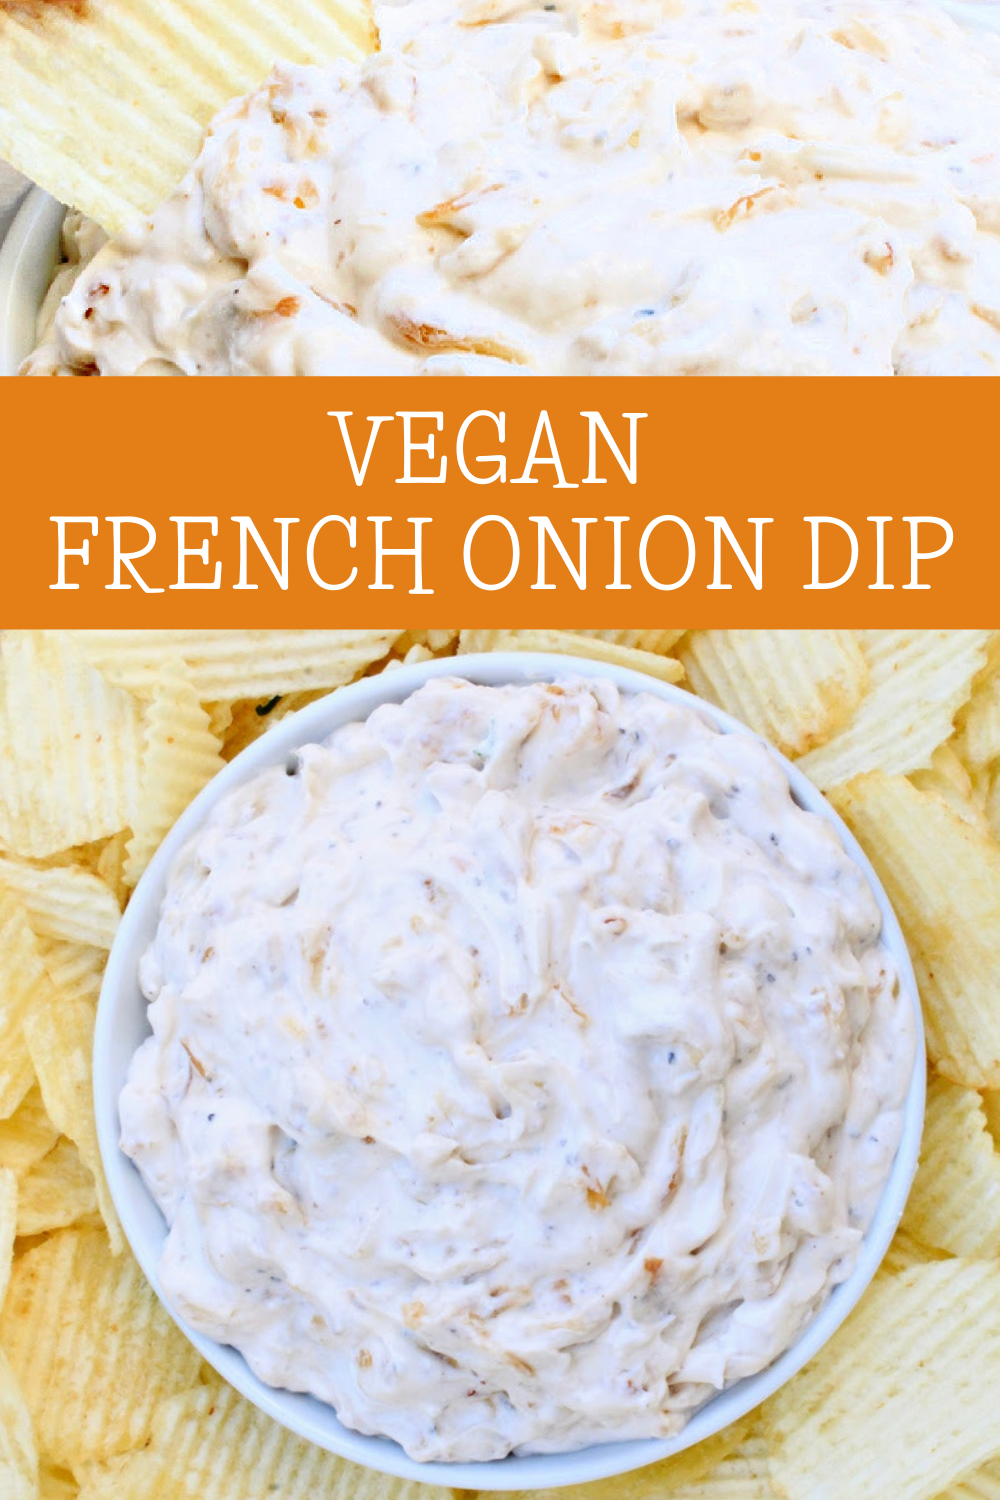 French Onion Dip ~ Making dairy-free french onion dip from scratch is easy to do with simple plant-based ingredients. Perfect for Game Day! via @thiswifecooks